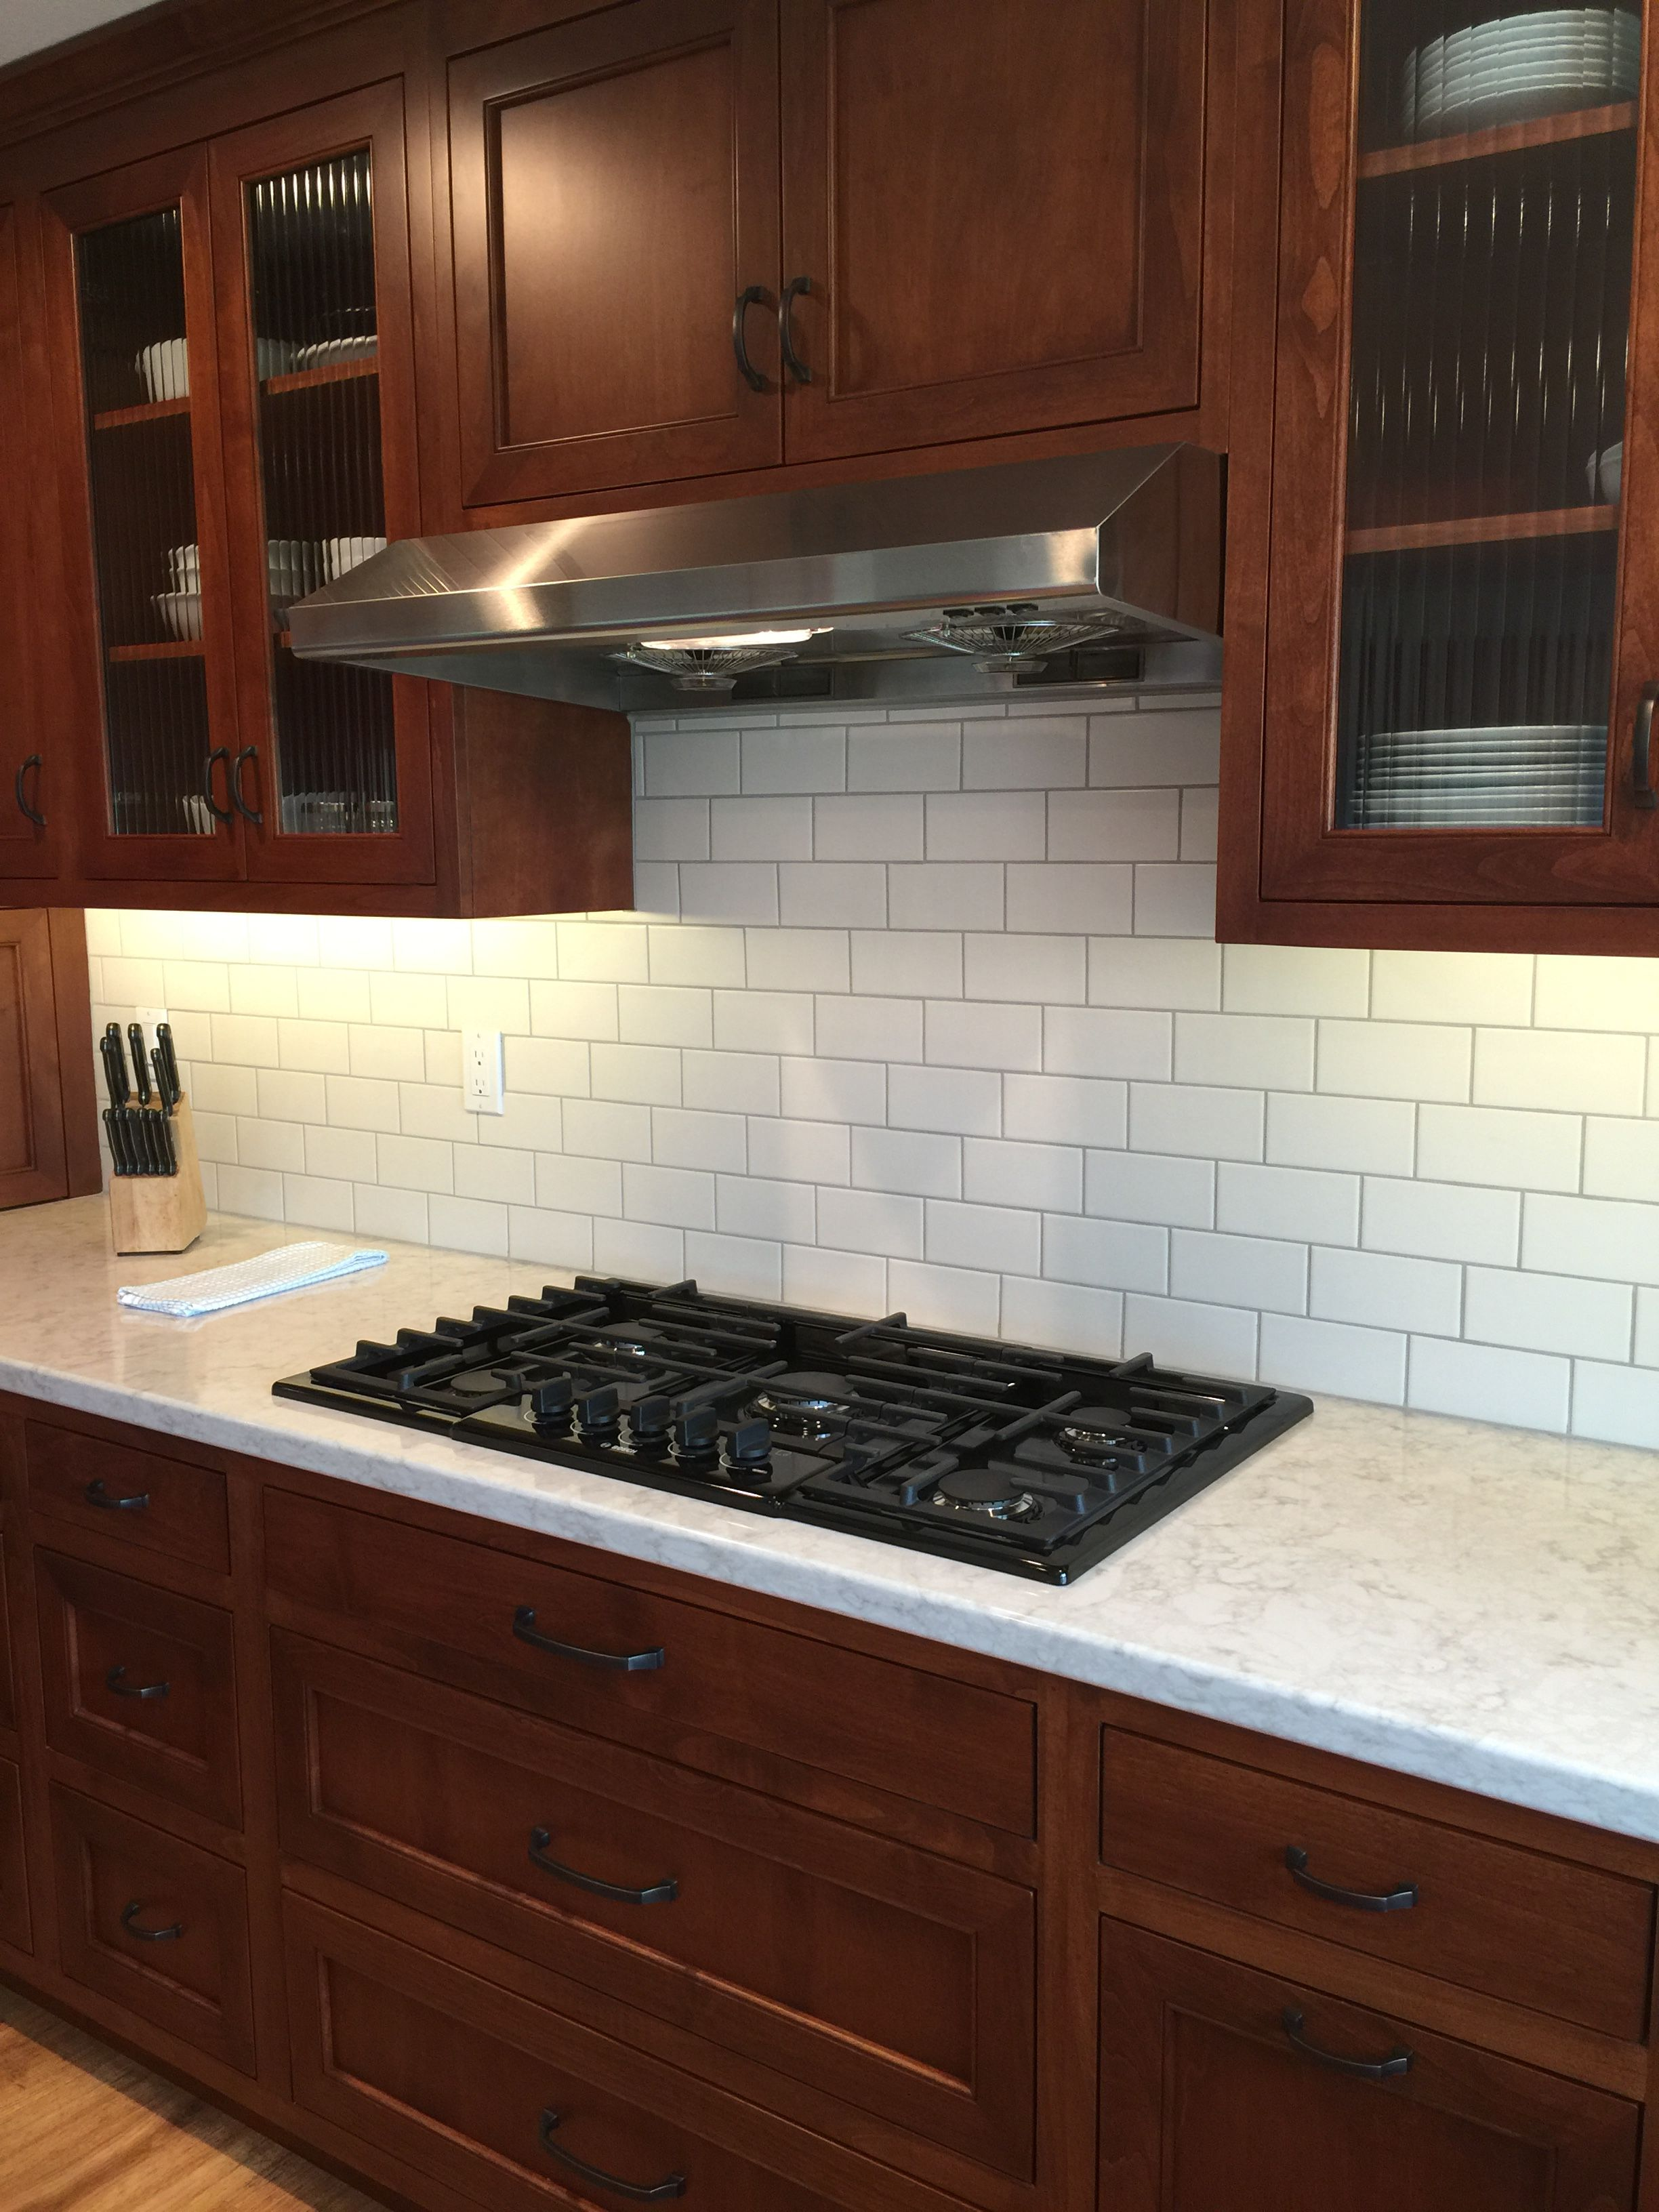 Subway Tile With 1 3 Offset Cherry Cabinets Kitchen Kitchen Backsplash Designs Easy Kitchen Backsplash